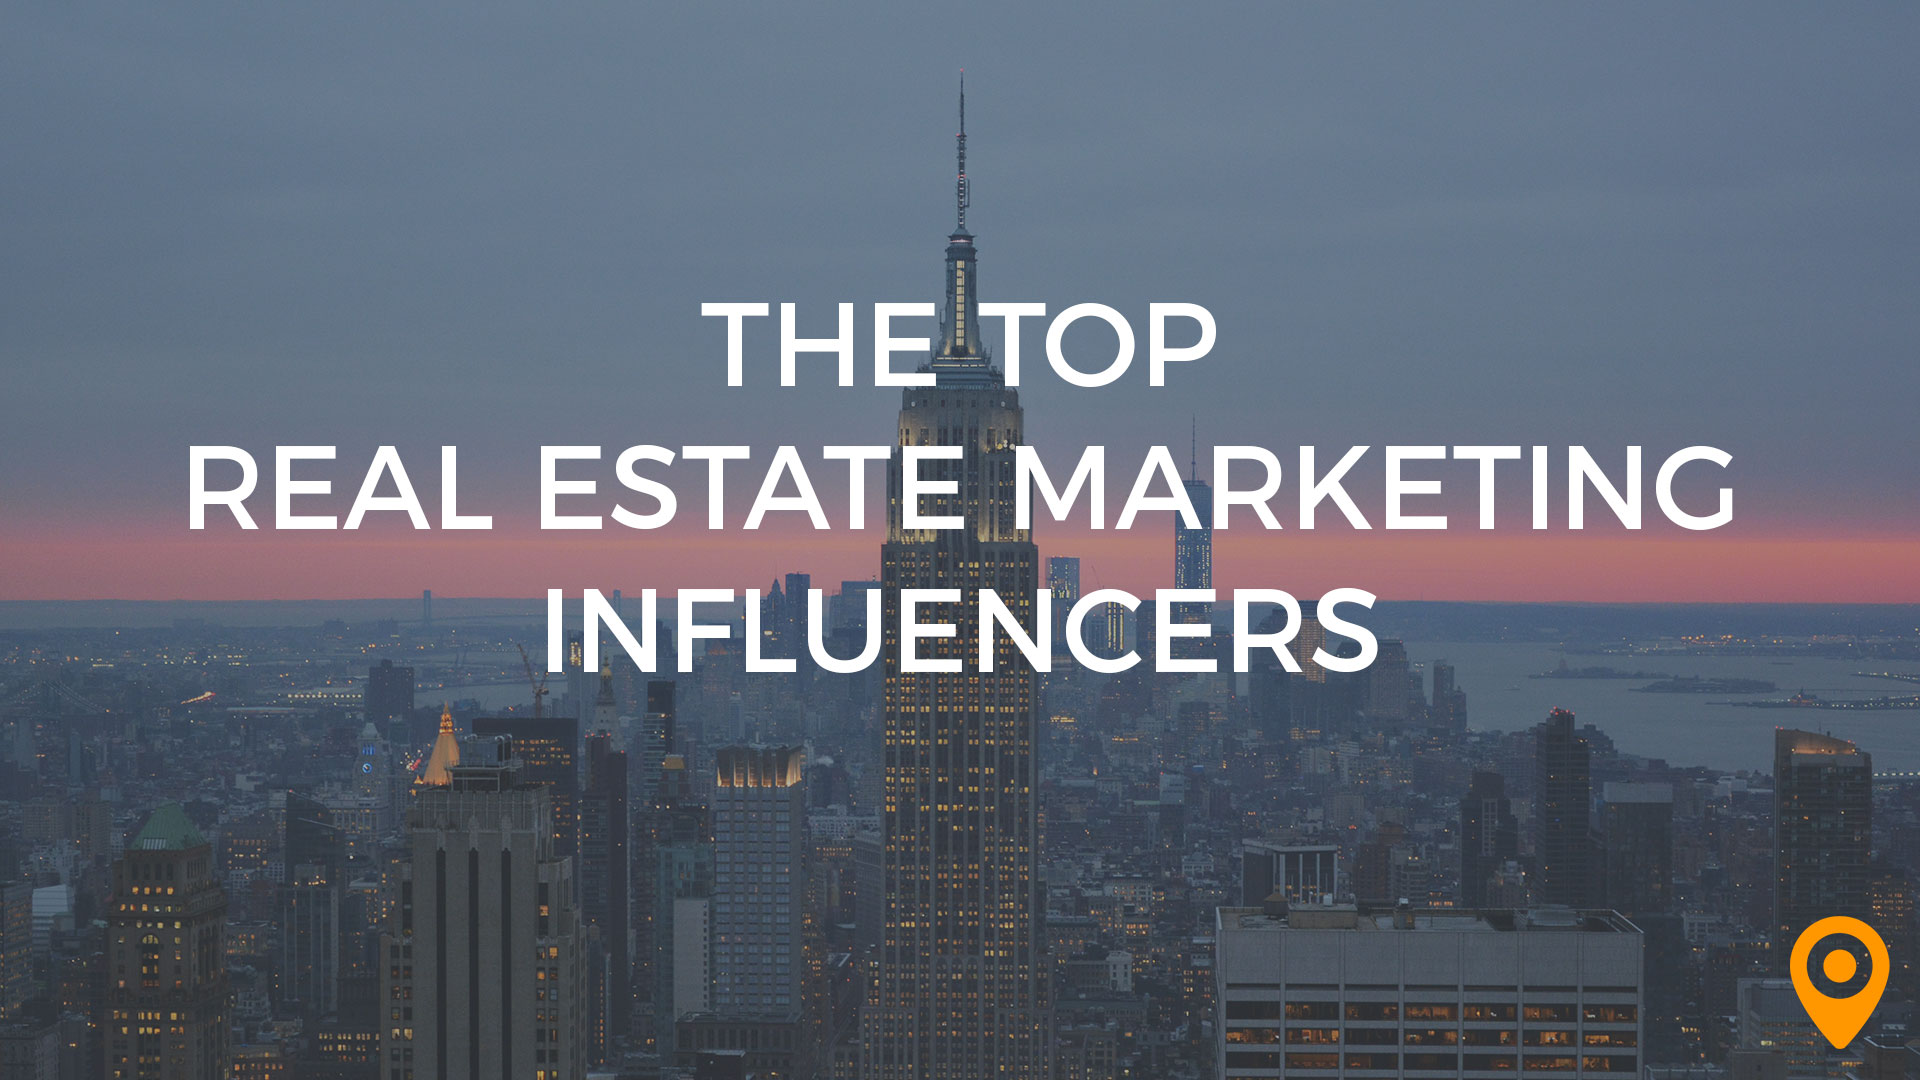 The Top Real Estate Marketing Influencers